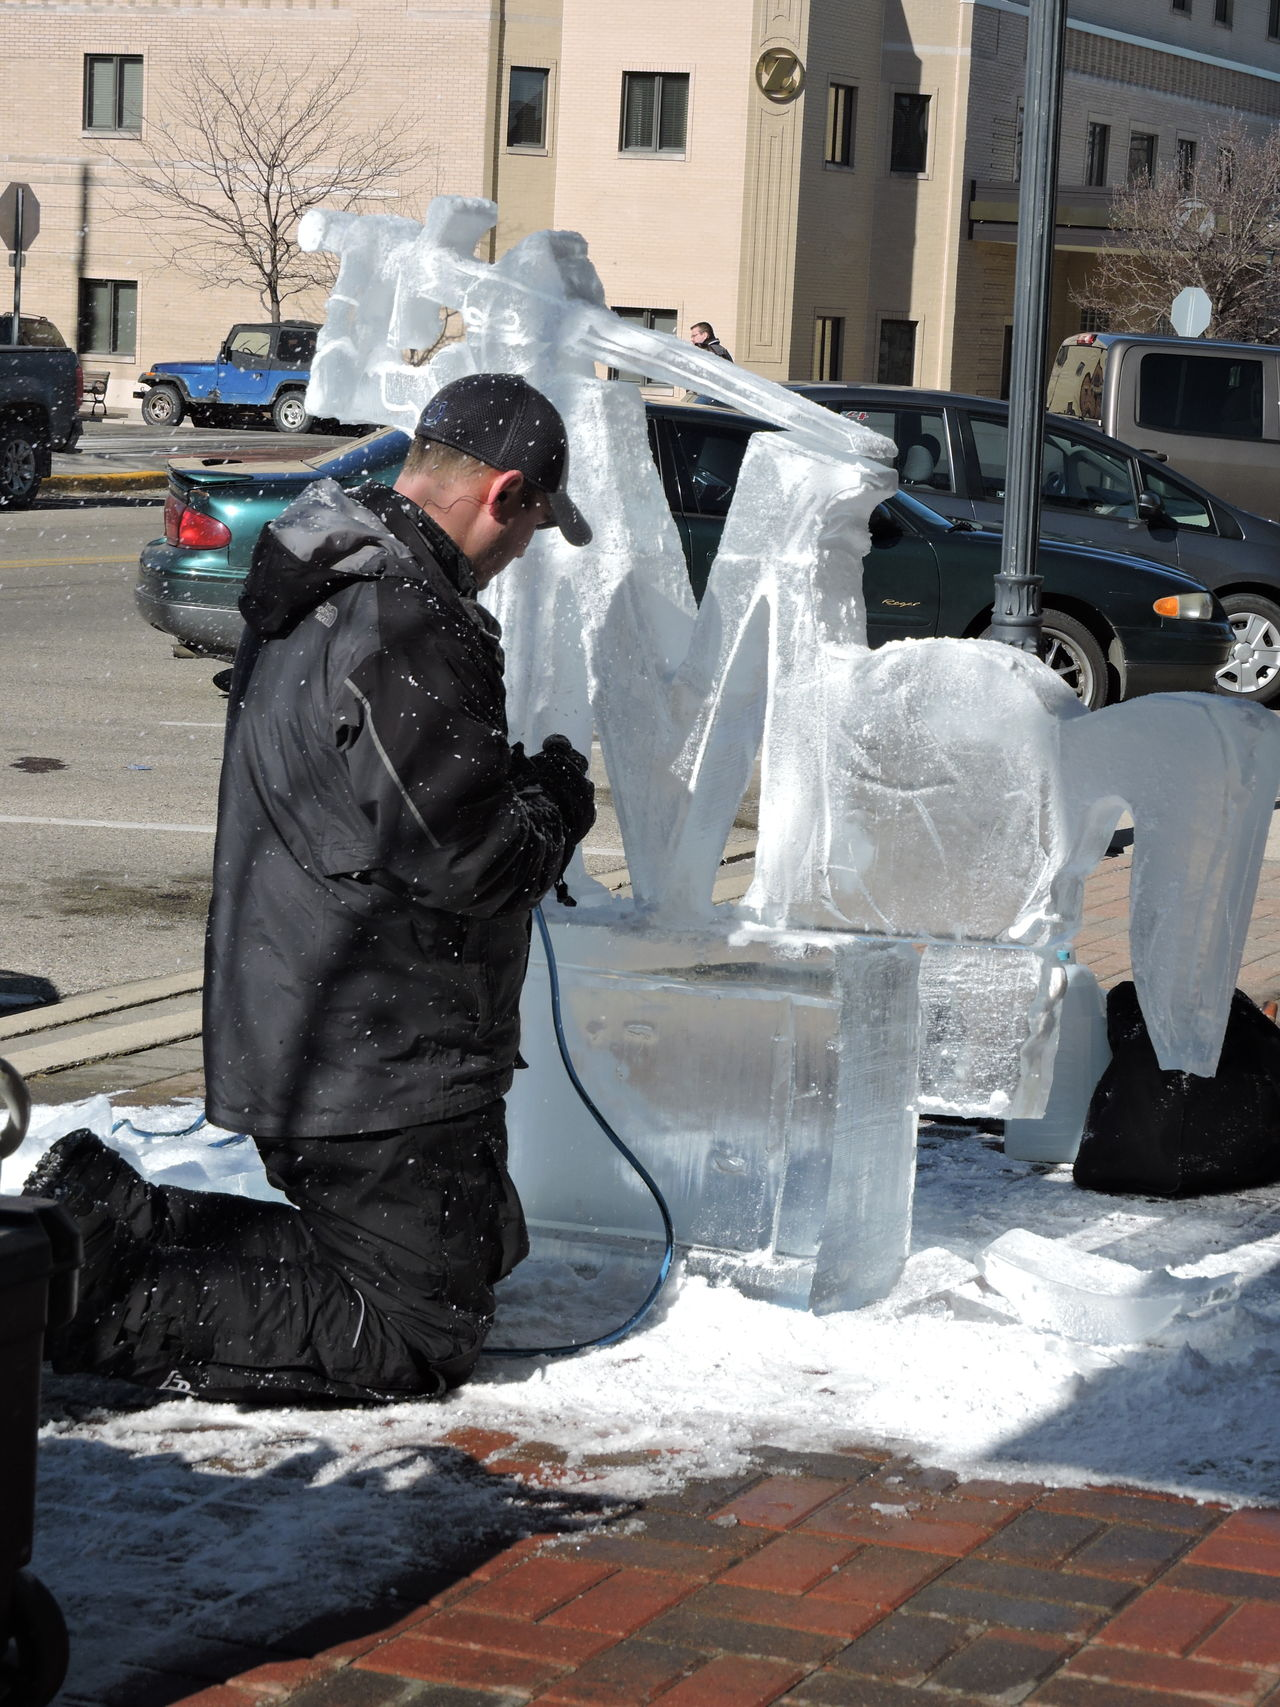 Fire and Ice Festival Adult Adults Only Artist At Work Cold Day Day Daytime Photography Headwear Ice Sculpture Occupation One Person Outdoors People Working